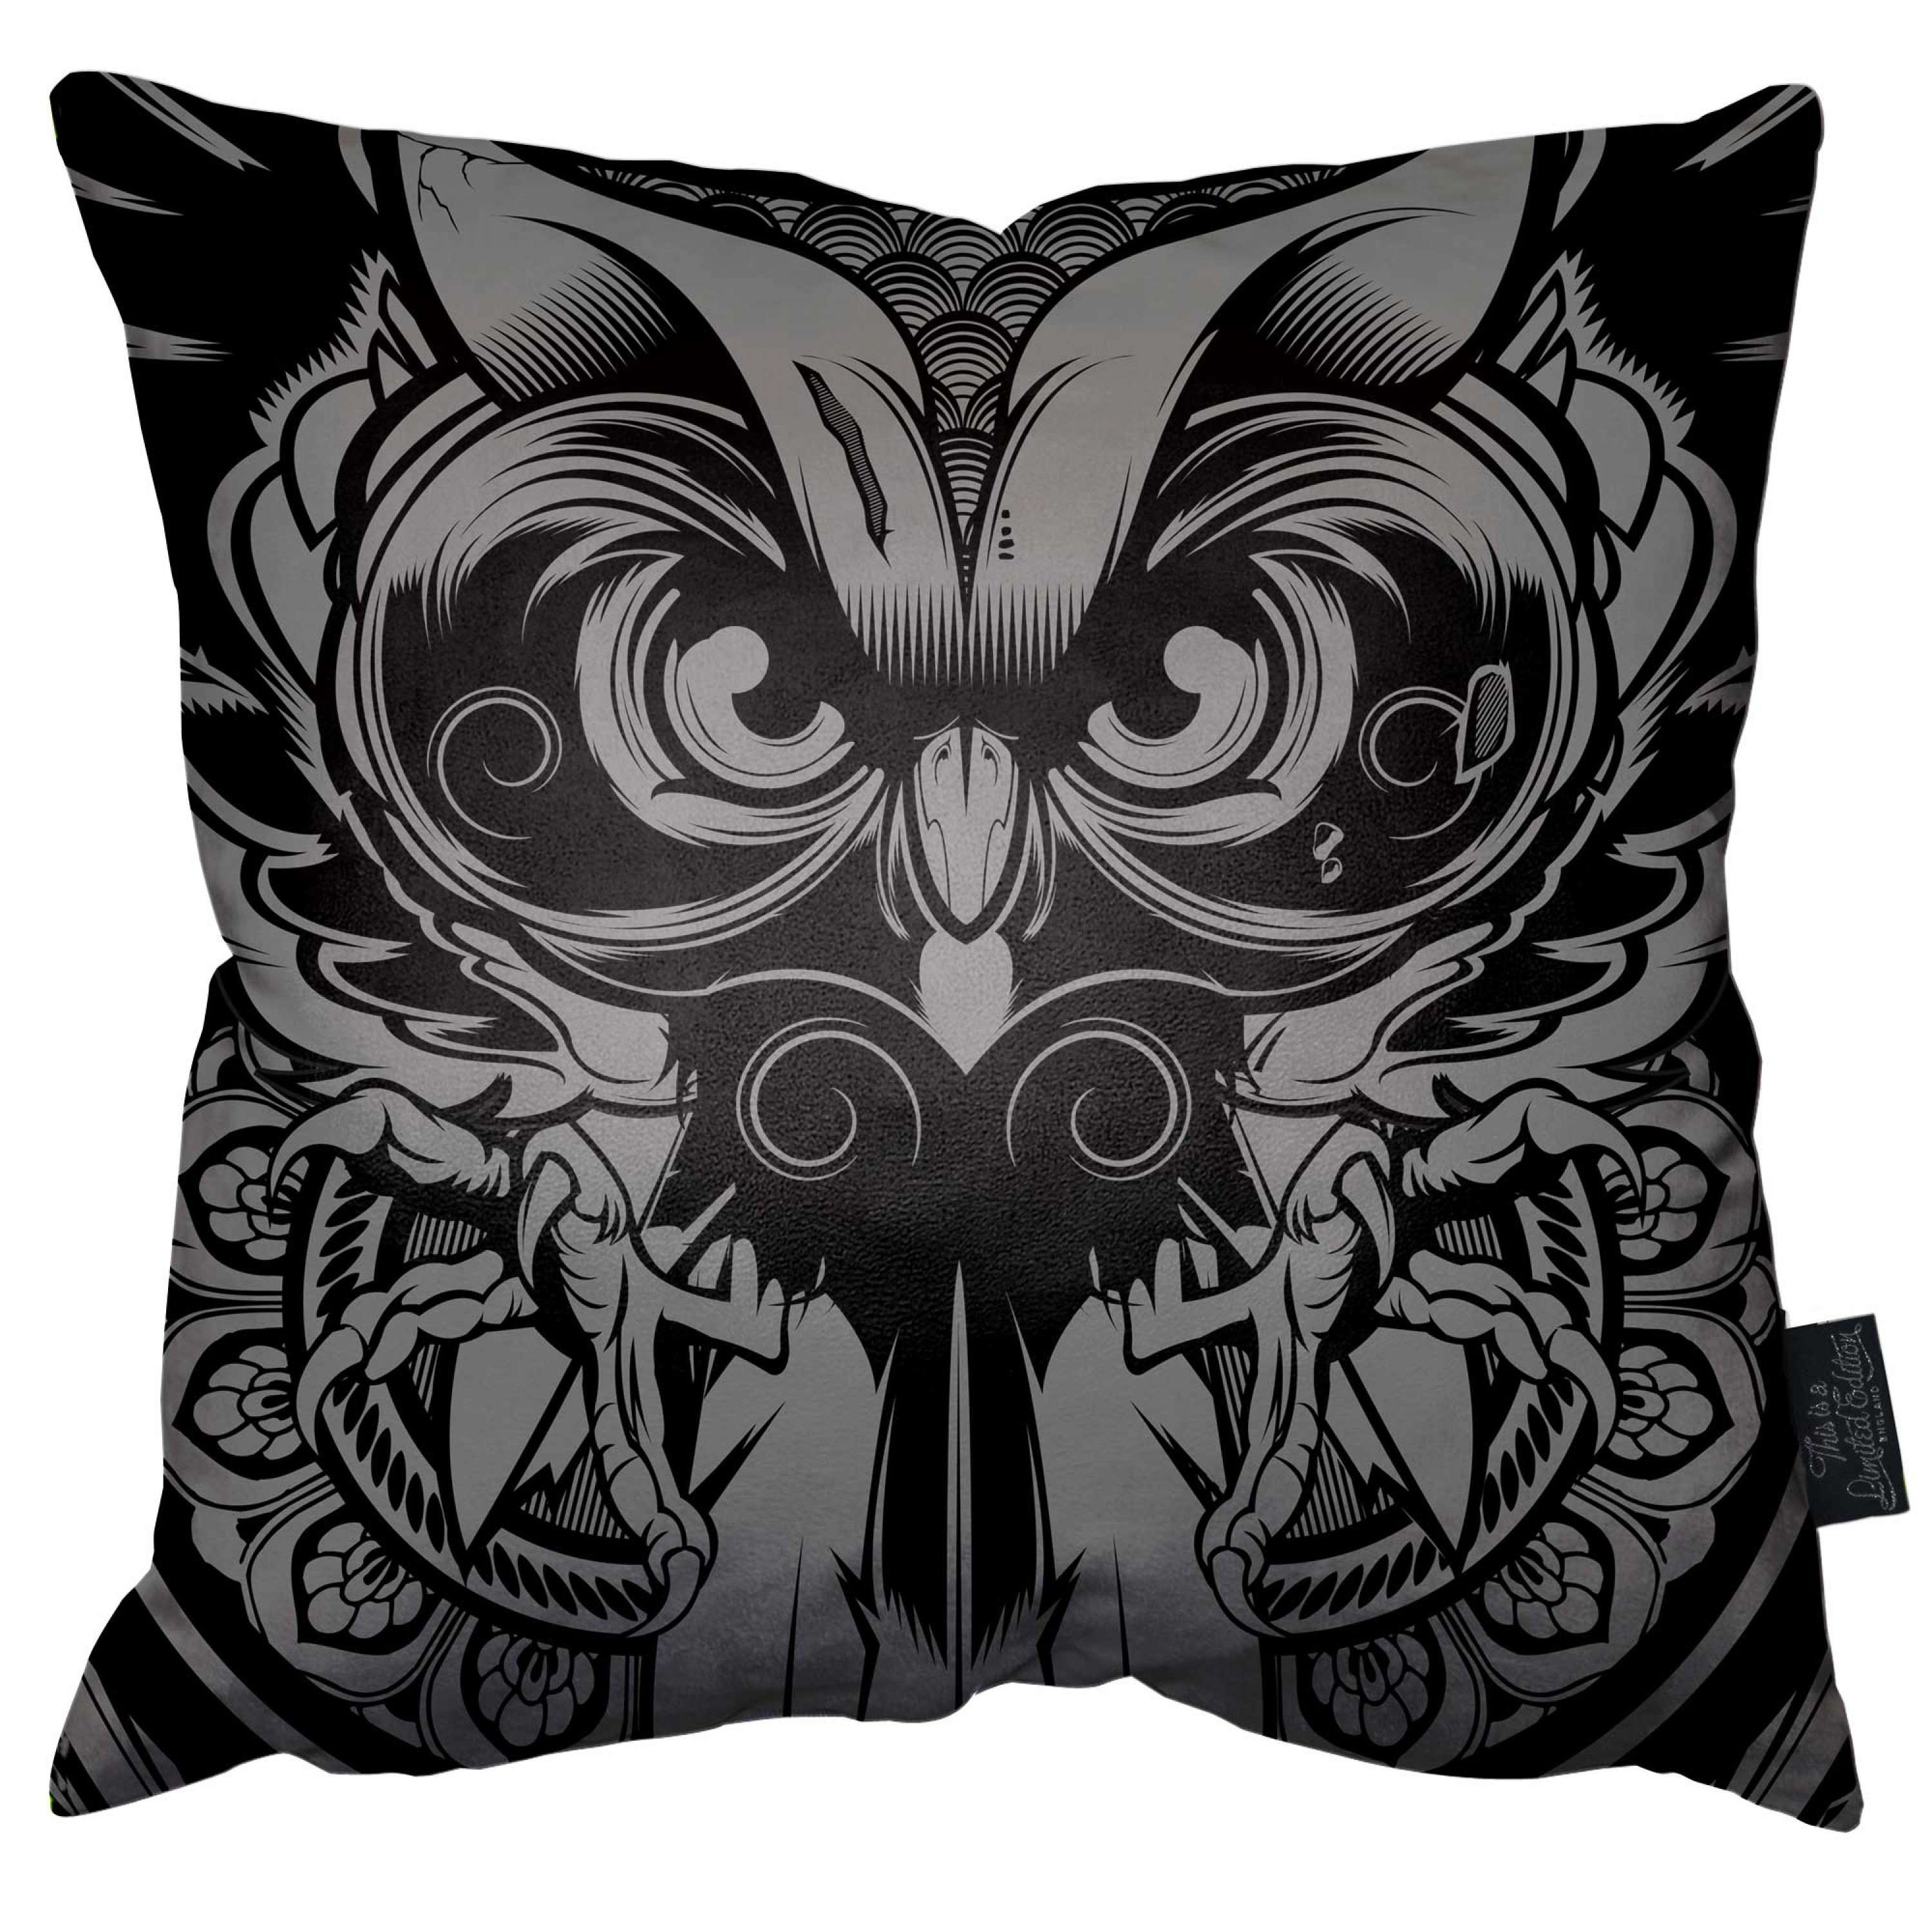 Enlightened Owl Pillow